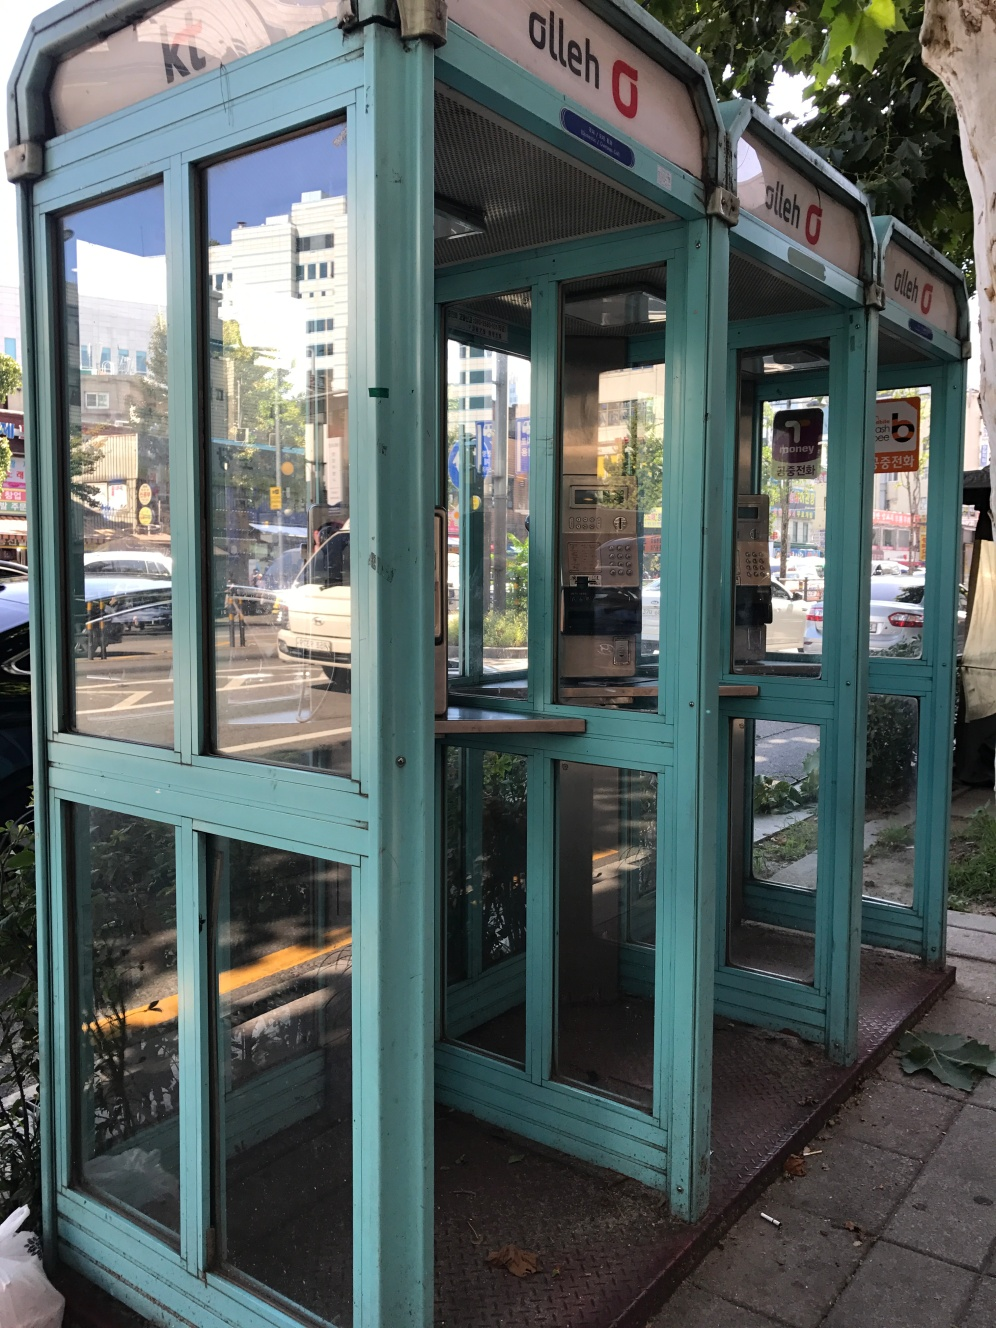 Telephone booths, its been a while since I have seen these